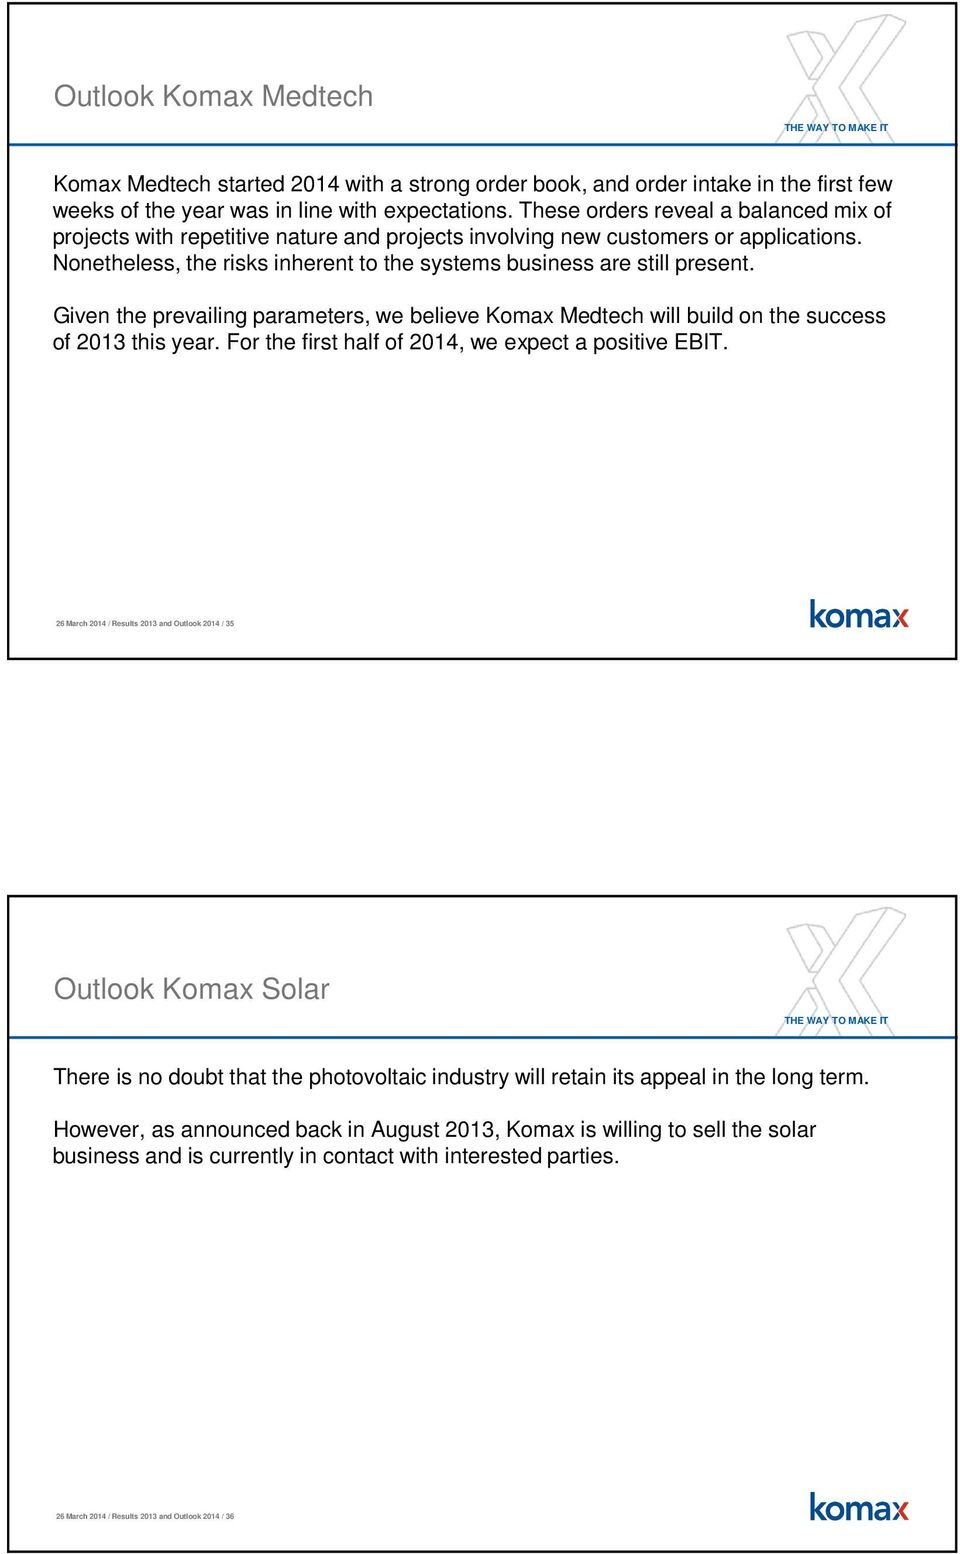 Given the prevailing parameters, we believe Komax Medtech will build on the success of 2013 this year. For the first half of 2014, we expect a positive EBIT.